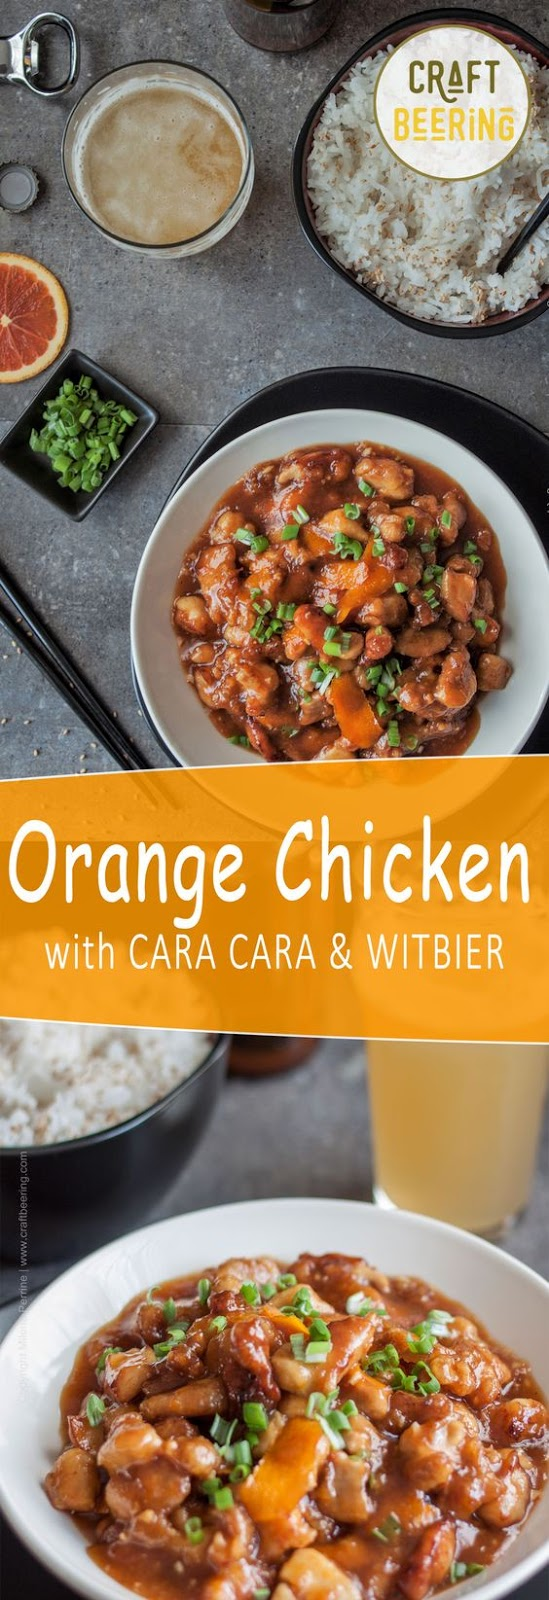 WITBIER ORANGE CHICKEN